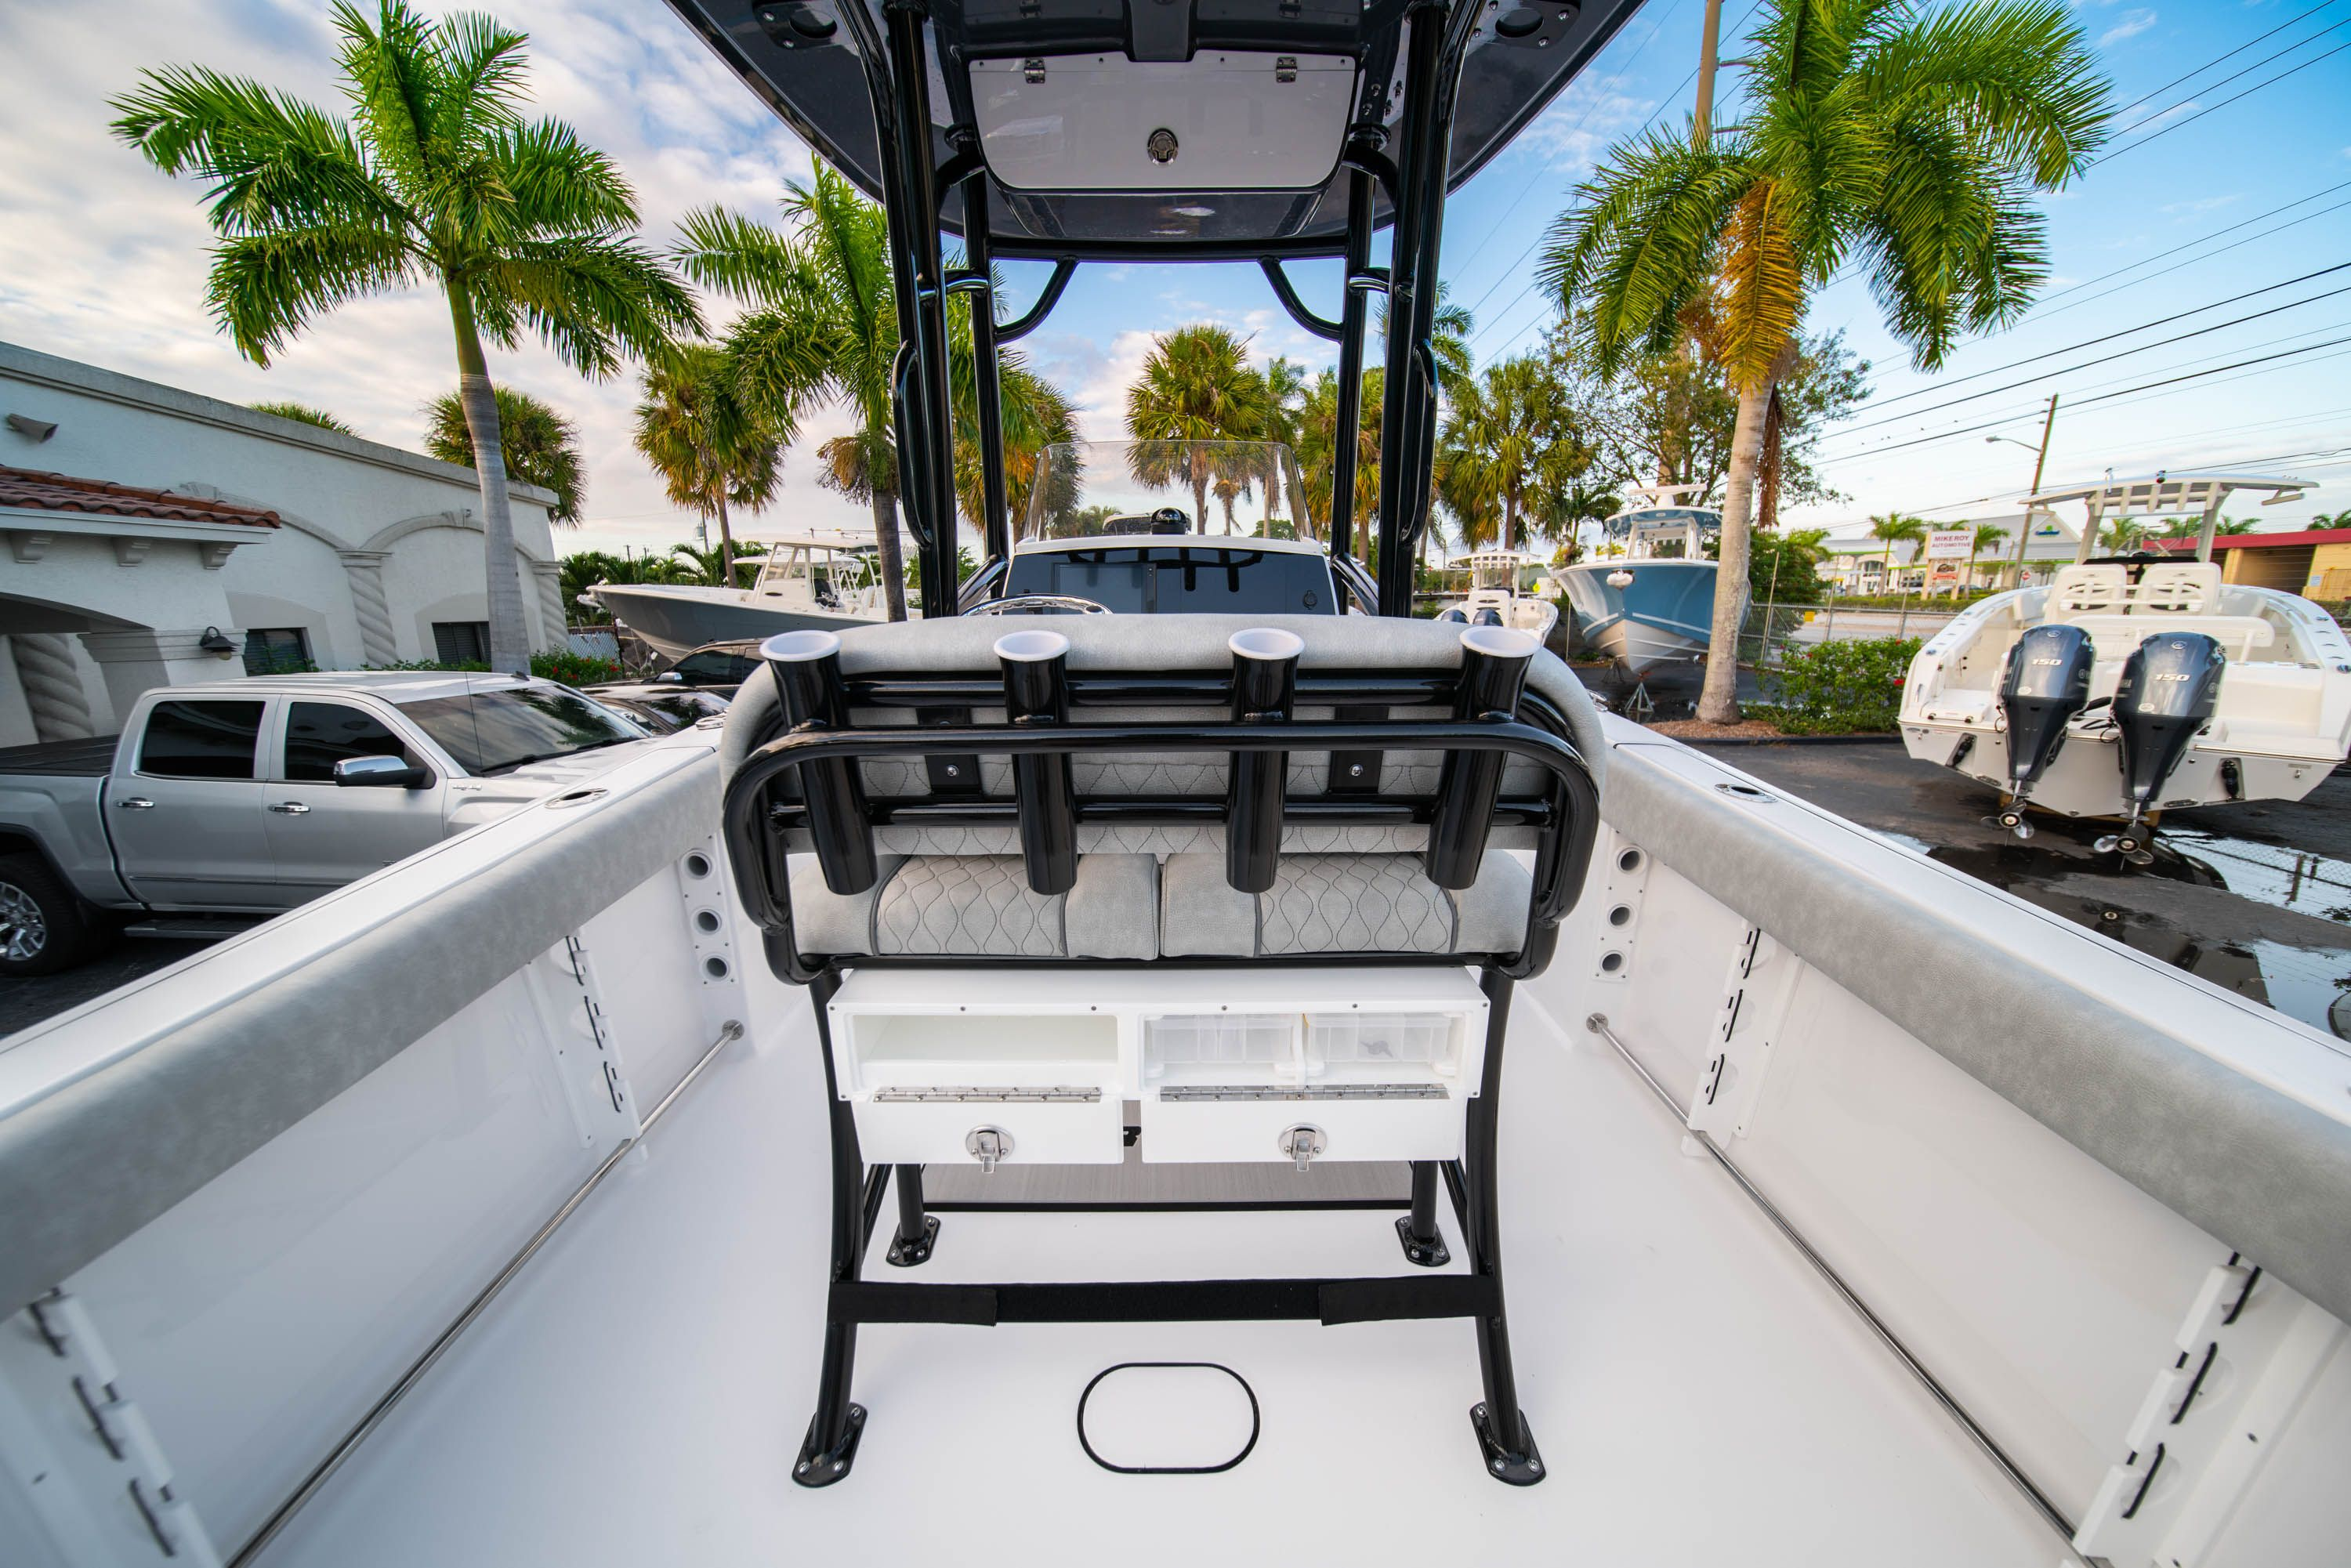 Thumbnail 19 for New 2020 Sportsman Open 232 Center Console boat for sale in West Palm Beach, FL